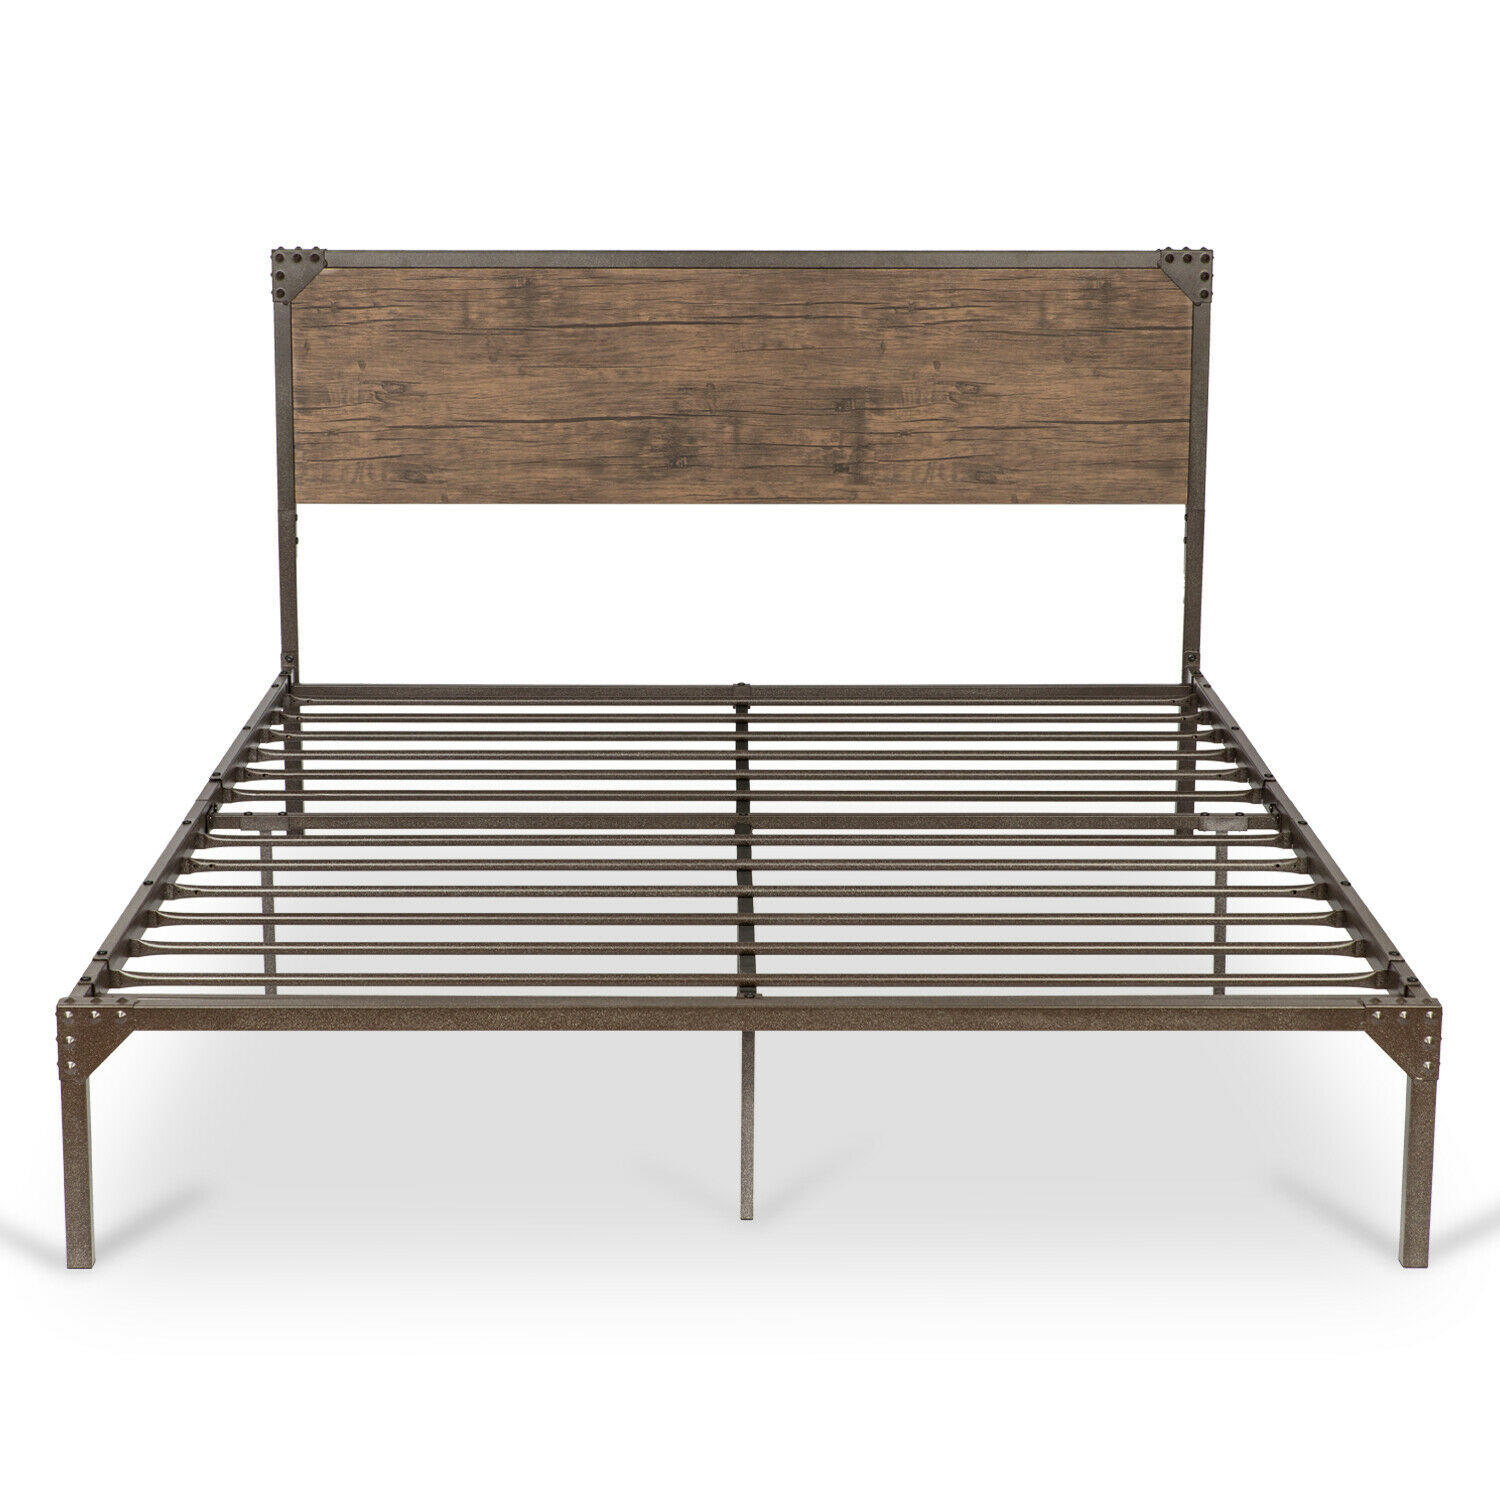 Queen Full Twin Size Metal Platform Bed Frame with Rustic Wo